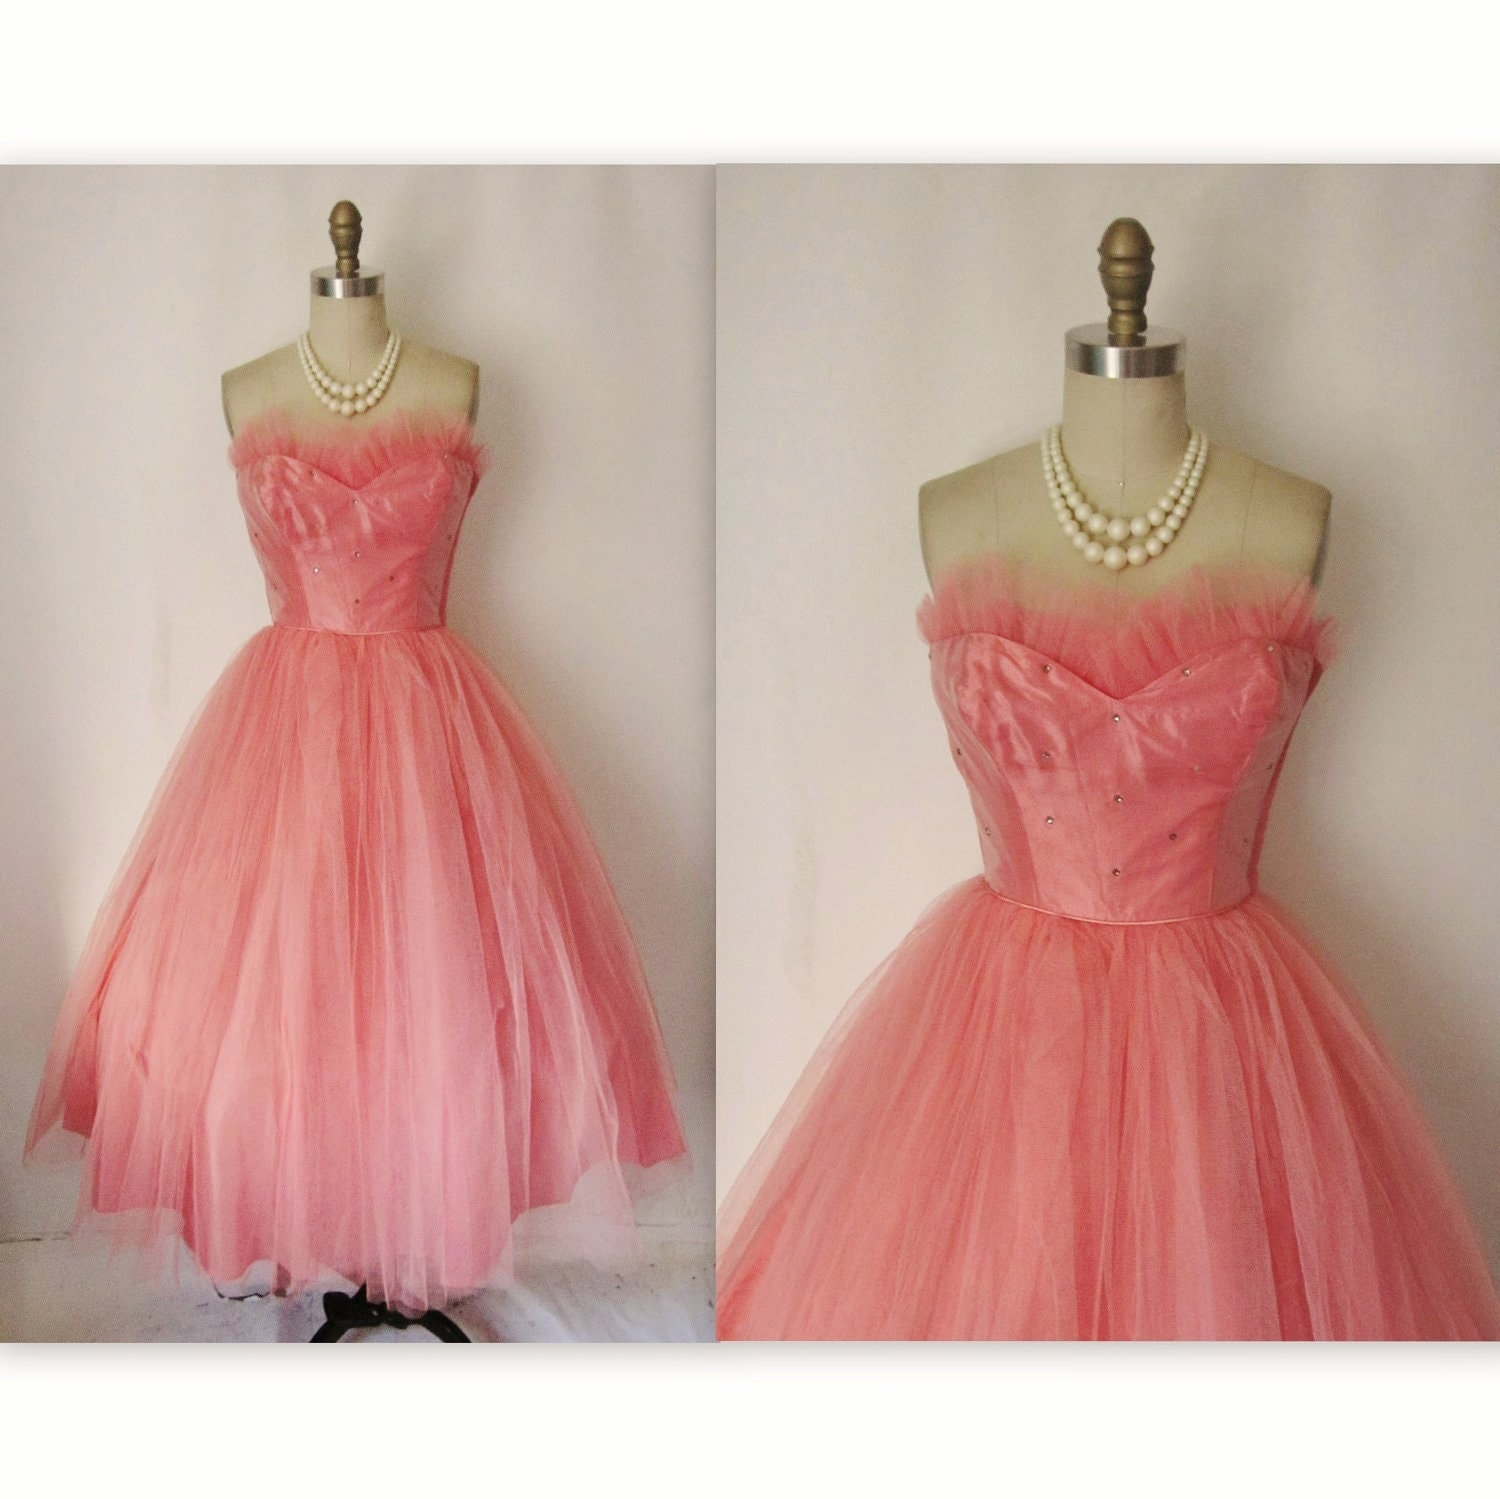 Vintage 50s Prom Dresses For Sale - Long Dresses Online